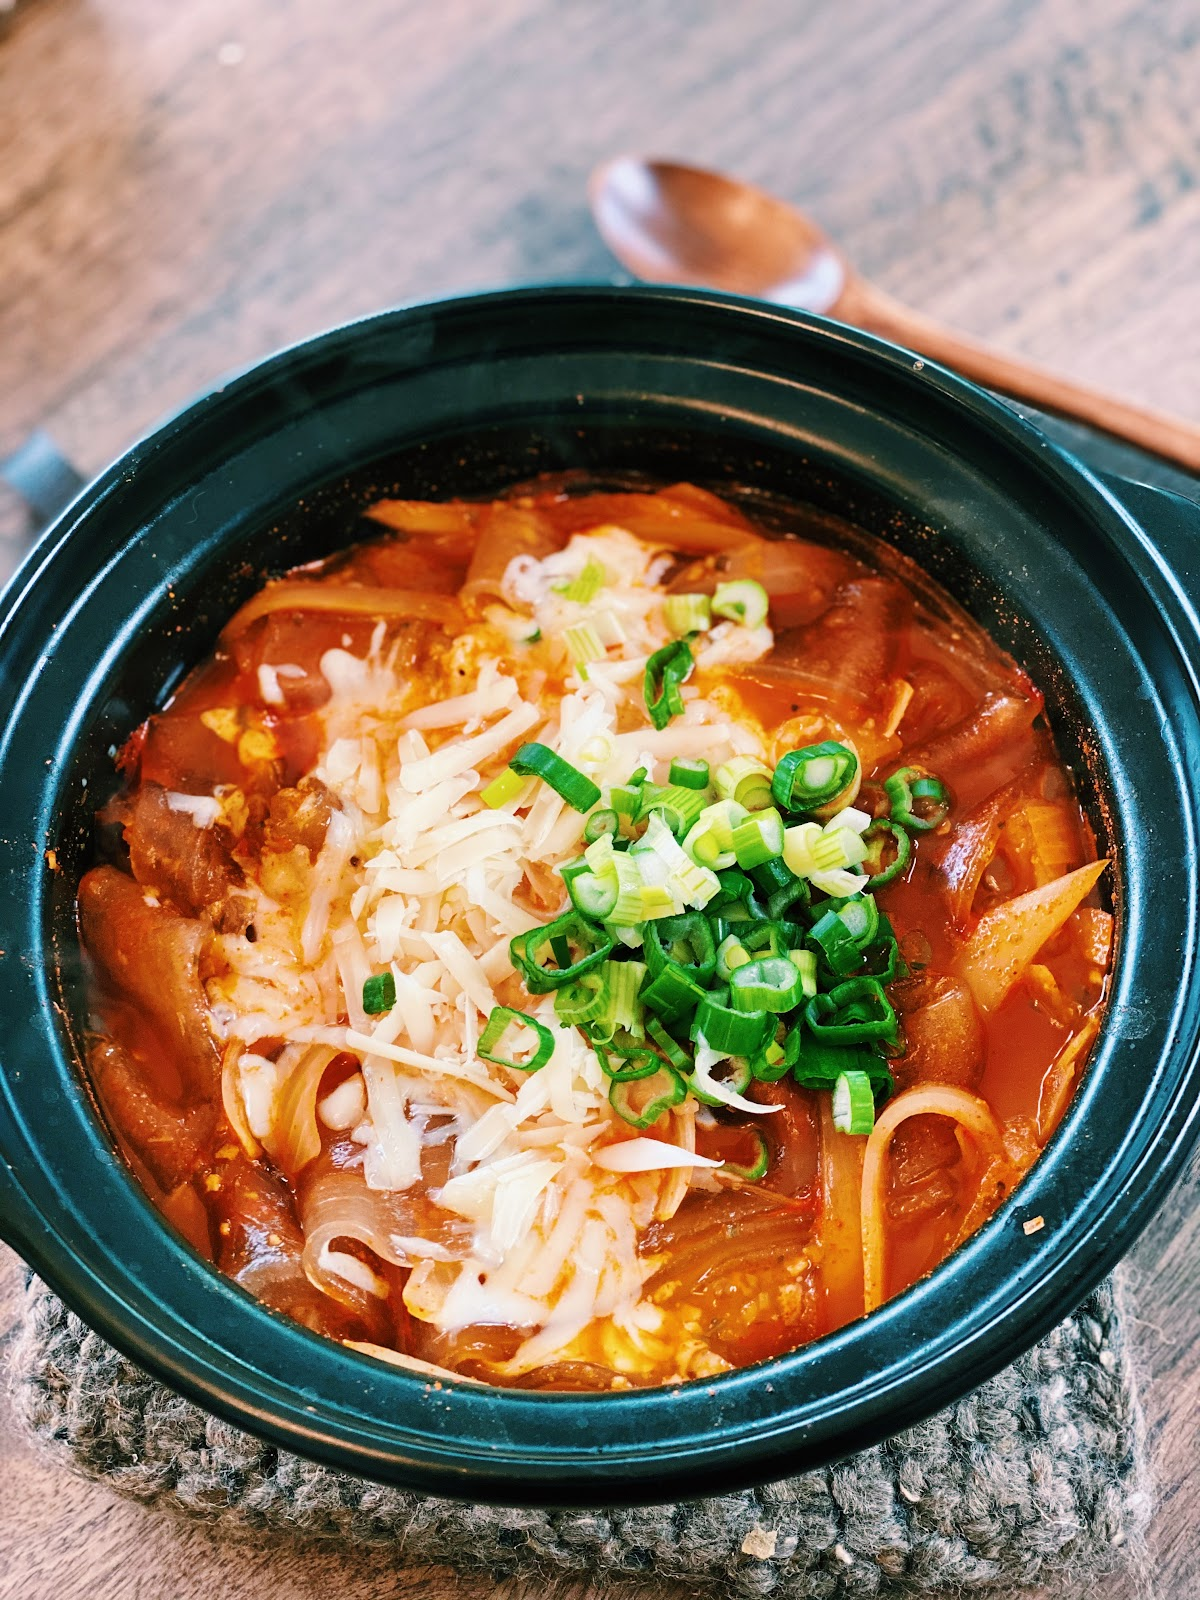 Spicy Korean Chewy Noodles